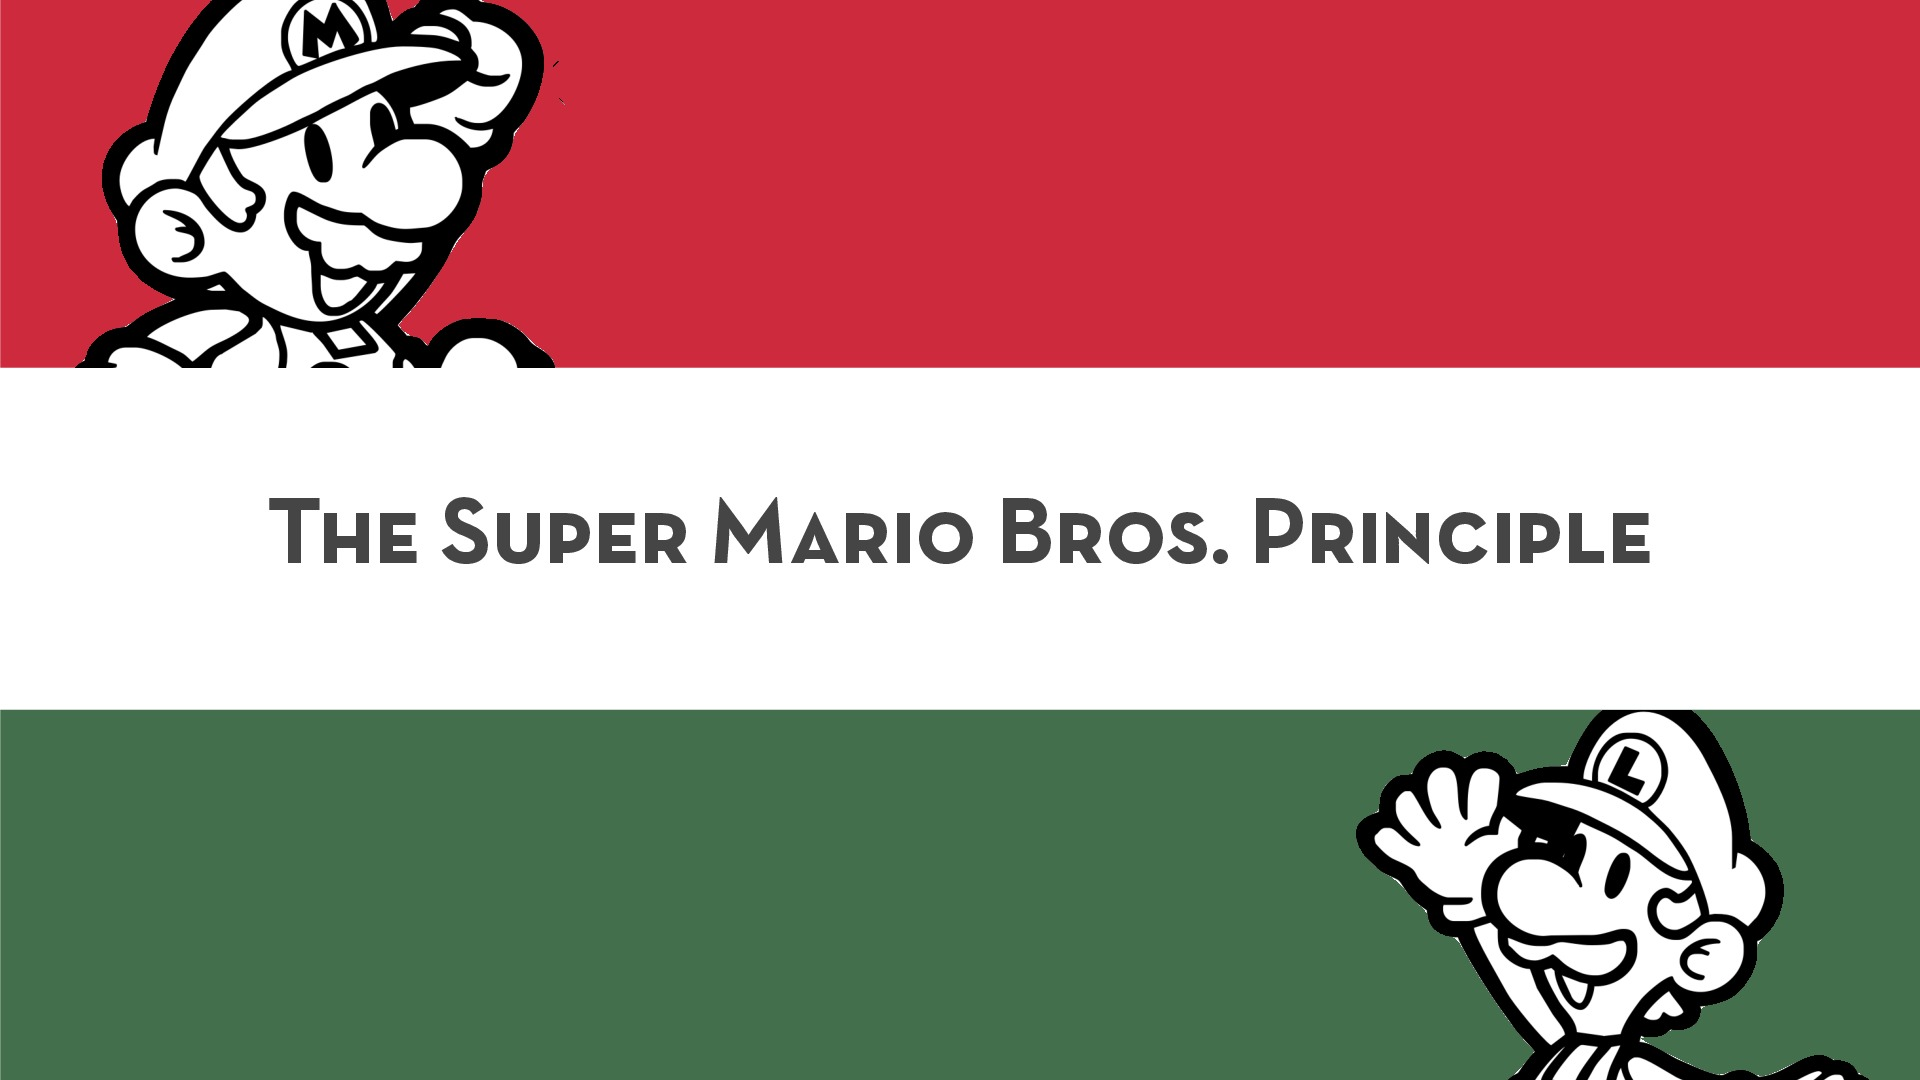 The Super Mario Bros. Principle